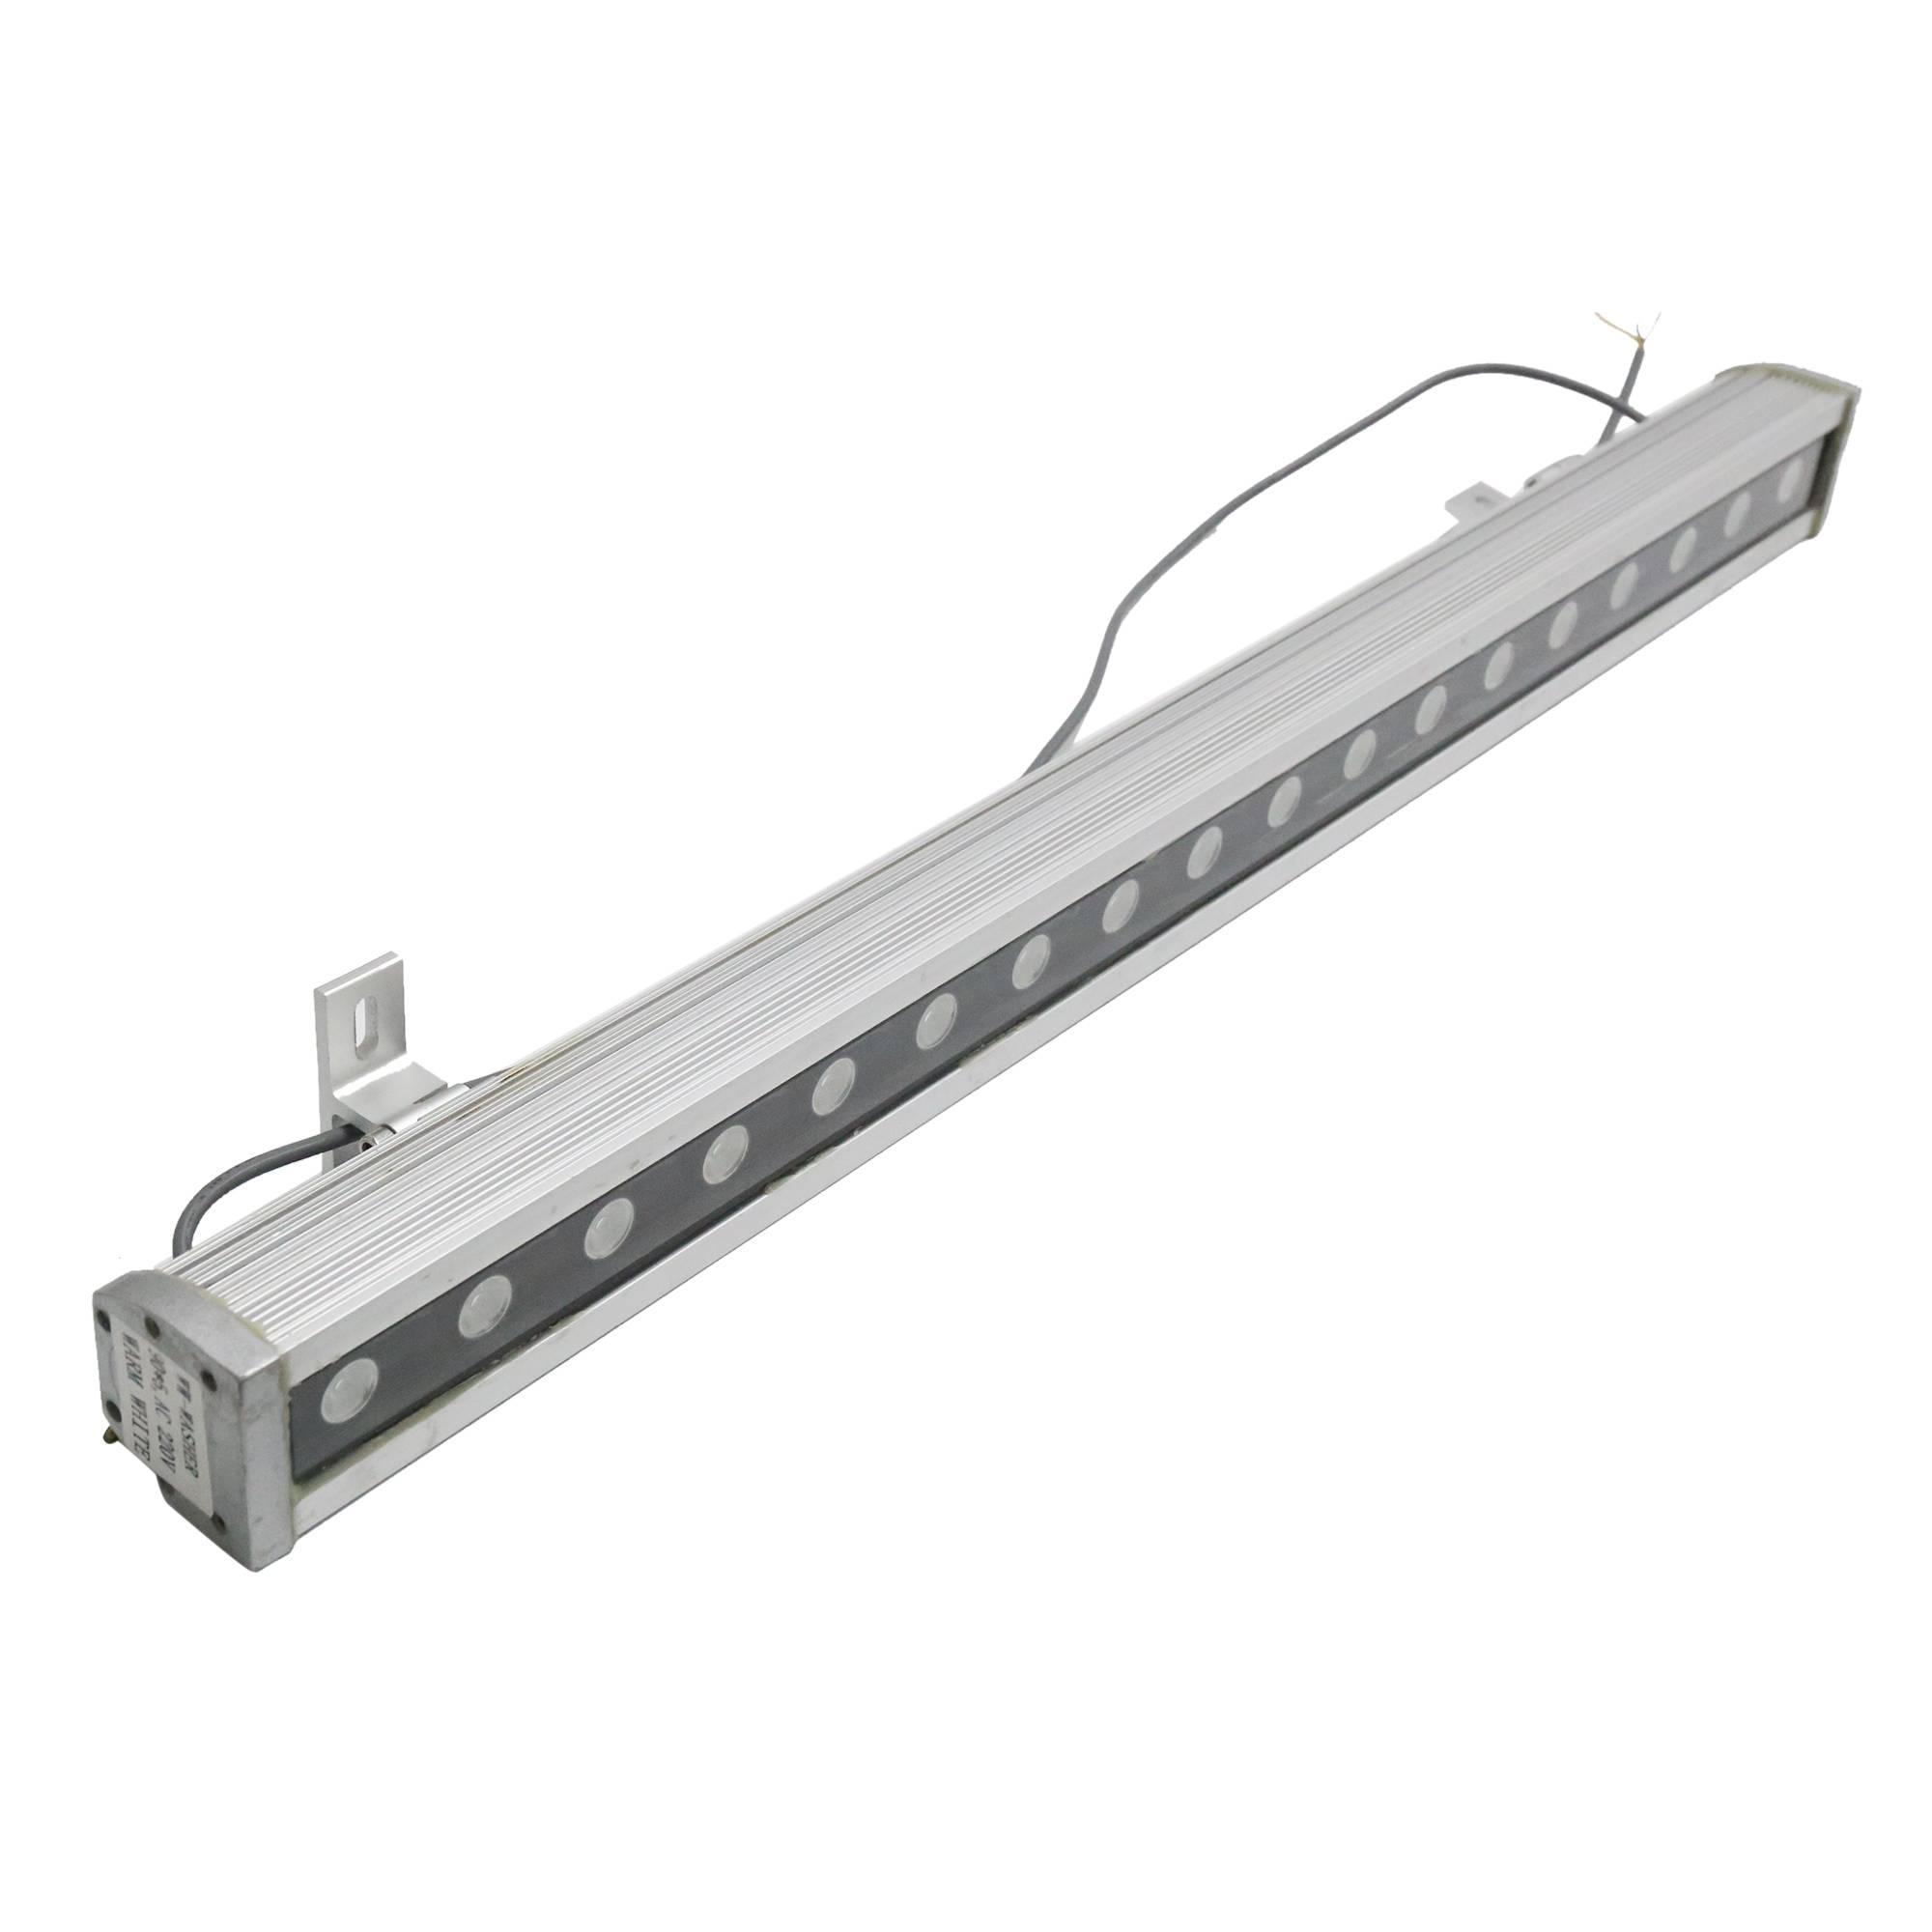 High Quality for Dmx Led Pixel Controller -